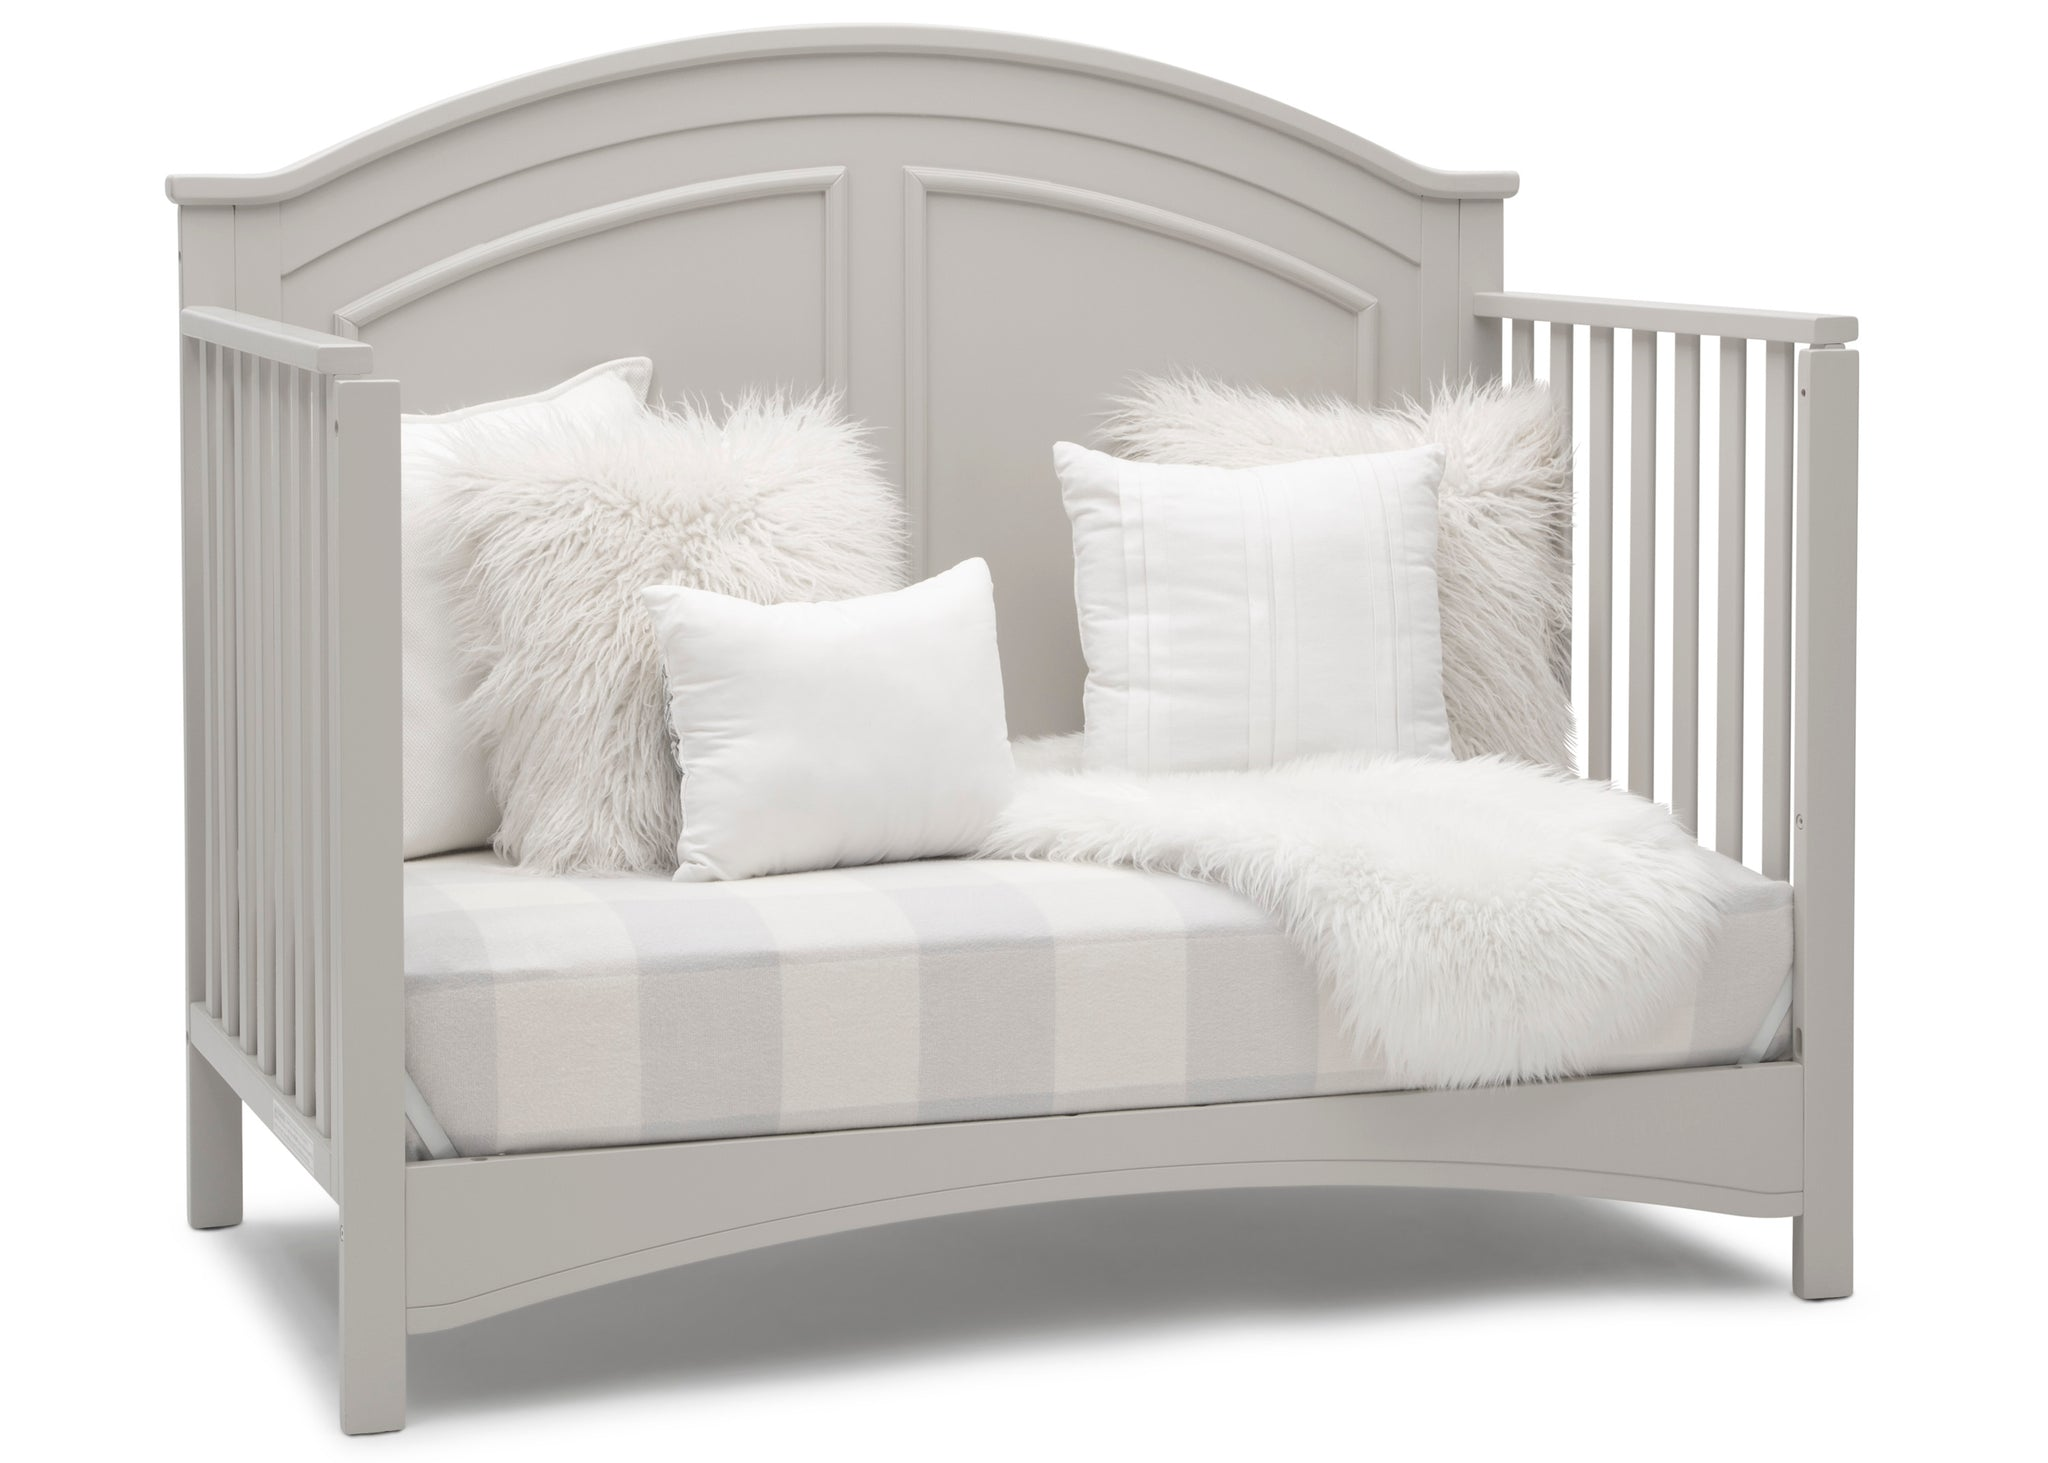 Delta Children Moonstruck Grey (1351) Perry 6-in-1 Convertible Crib, Right Sofa Silo View